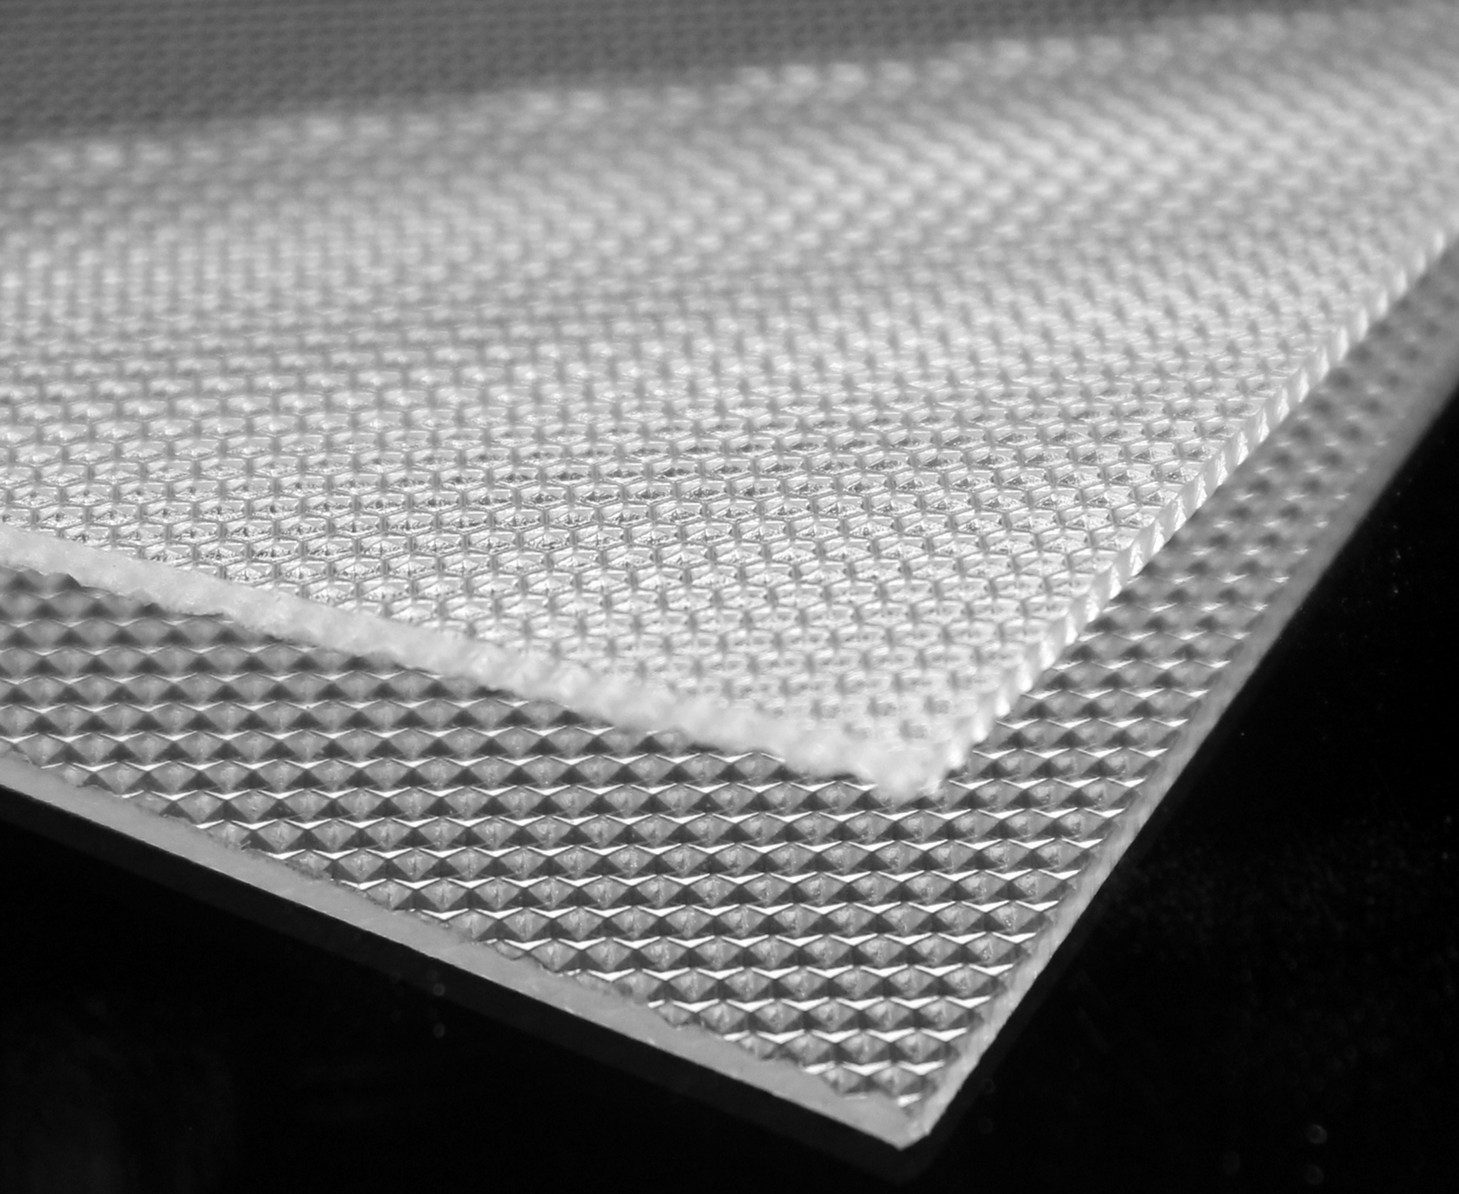 acrylic pmma diffuser sheet 1 to 5mm ps diffuser sheet polystyrene diffuser sheet for lighting buy light diffuser sheet plastic ps led strip light